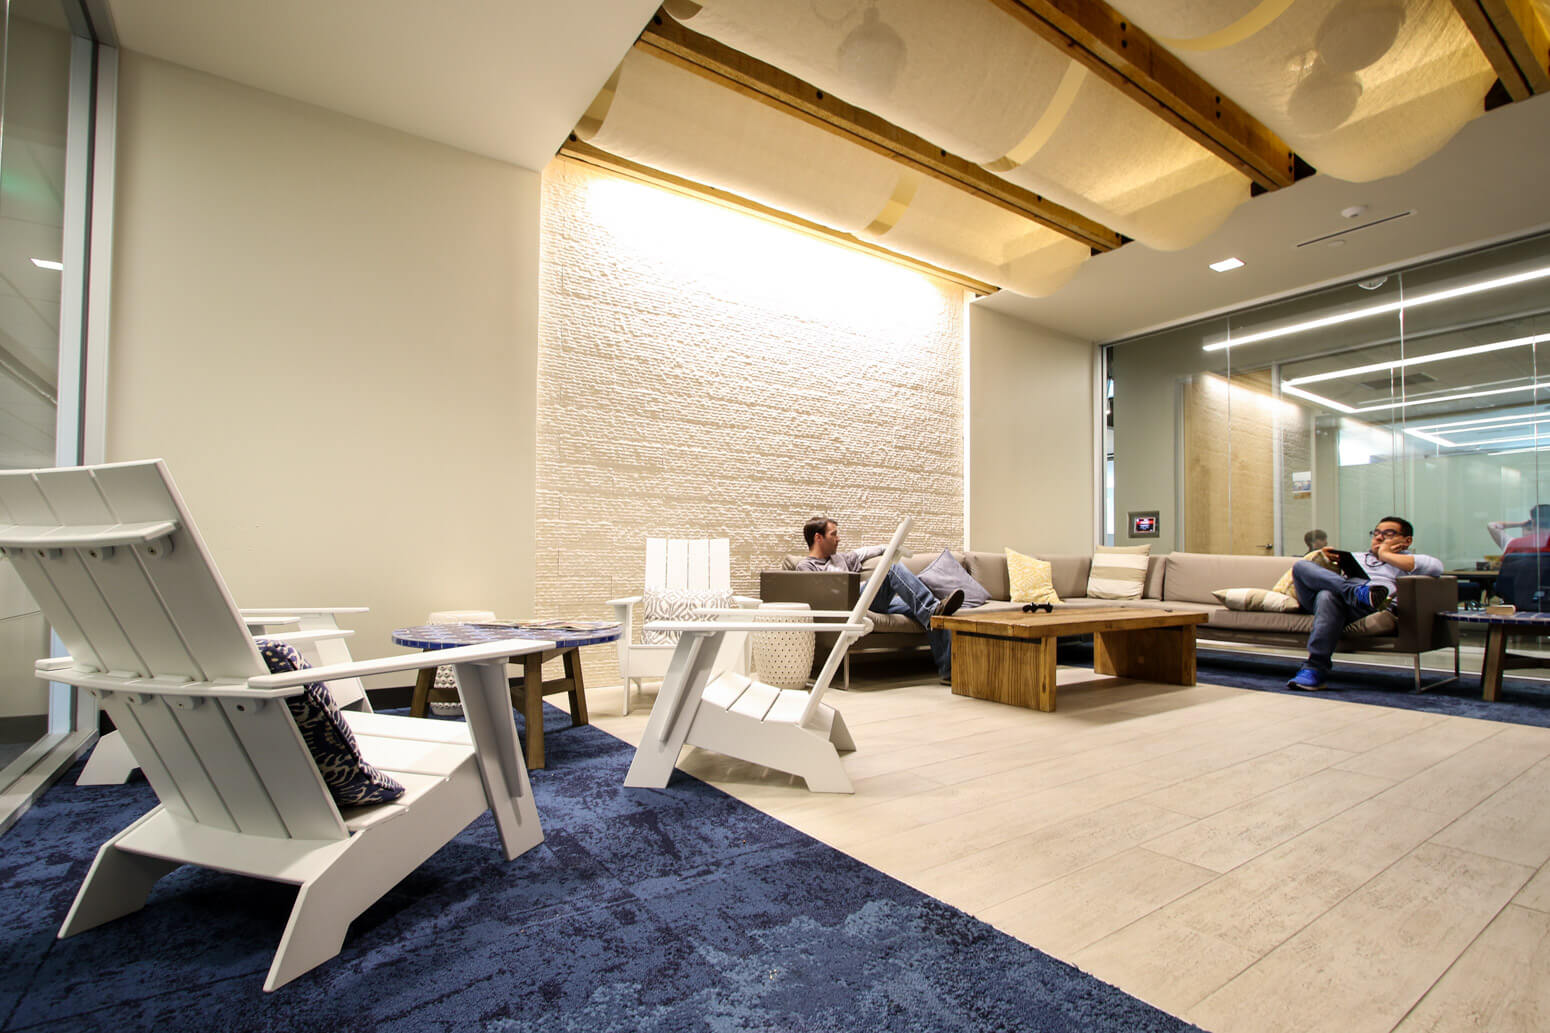 HomeAway Austin Office Killer Spaces-21